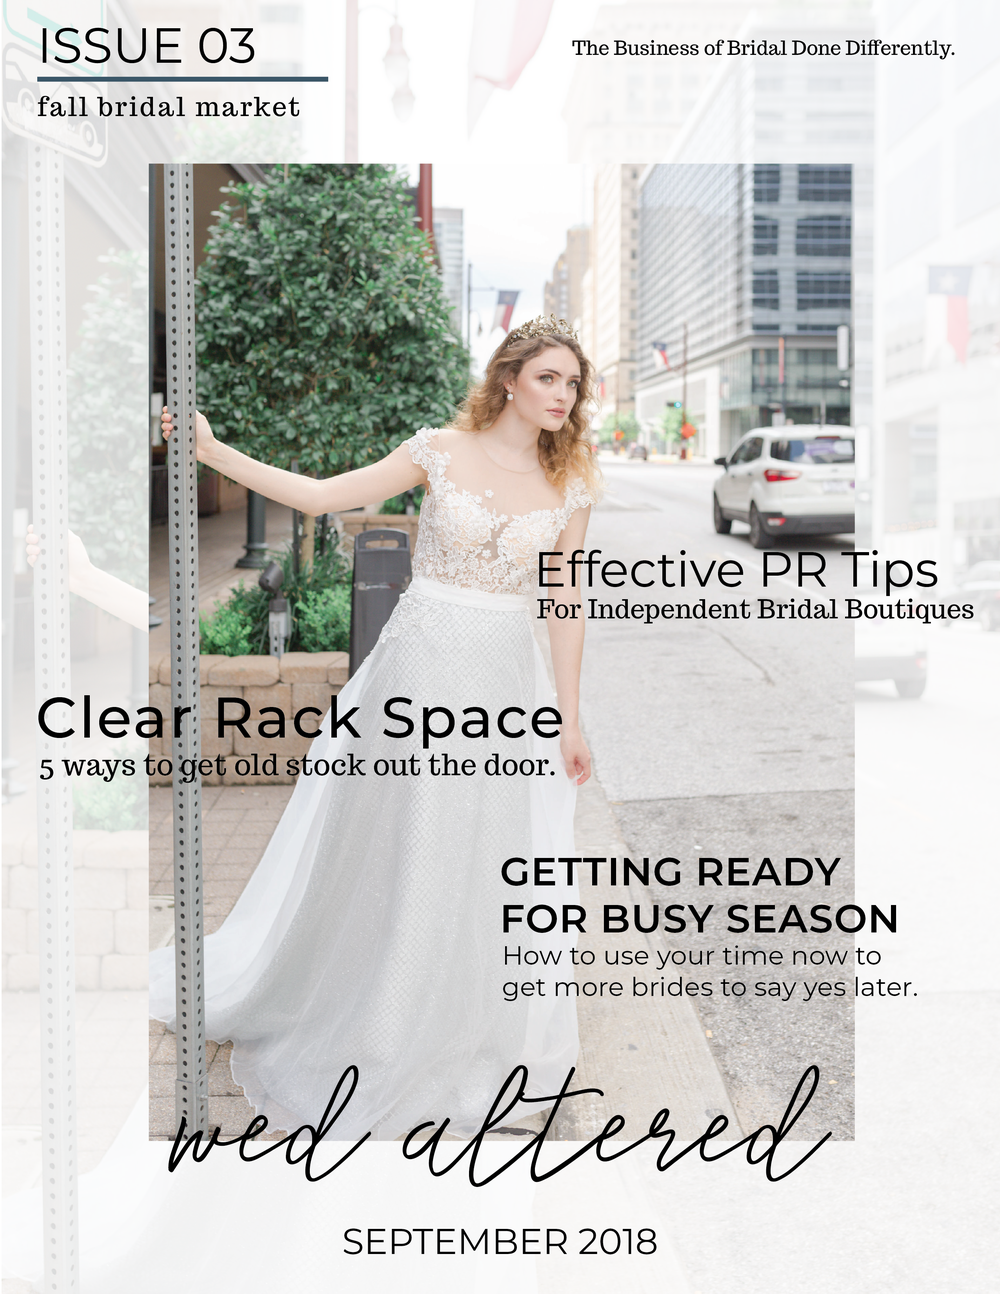 Fall Bridal Market - We cover lots of fashion (obviously!), money management, store features, and everything else you need to get ready for market season and all the brides you want to meet during the upcoming Engagement Season! It's our biggest and best issue yet!